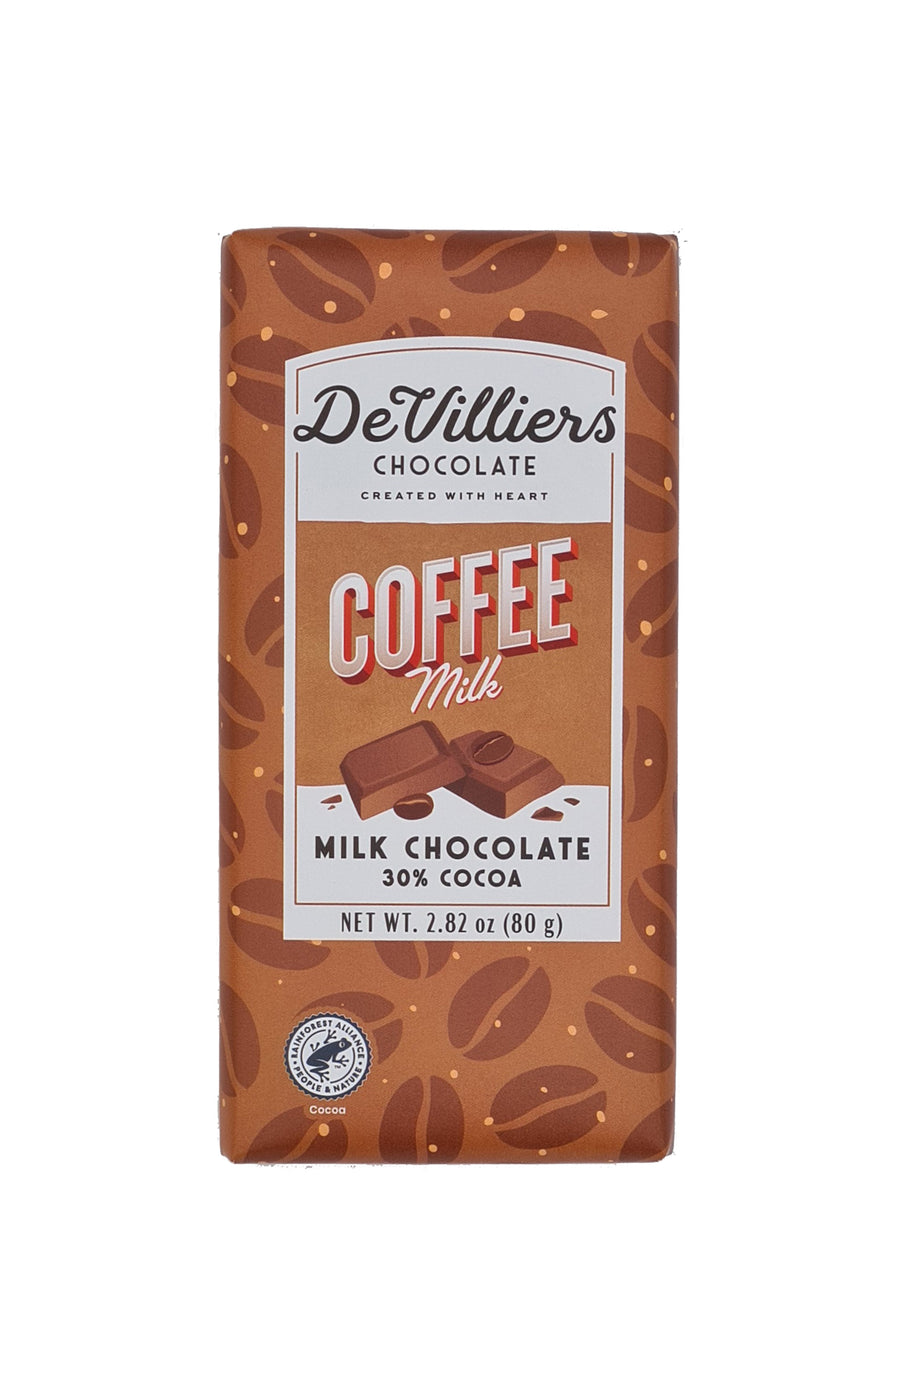 Coffee Milk - De Villiers Chocolate